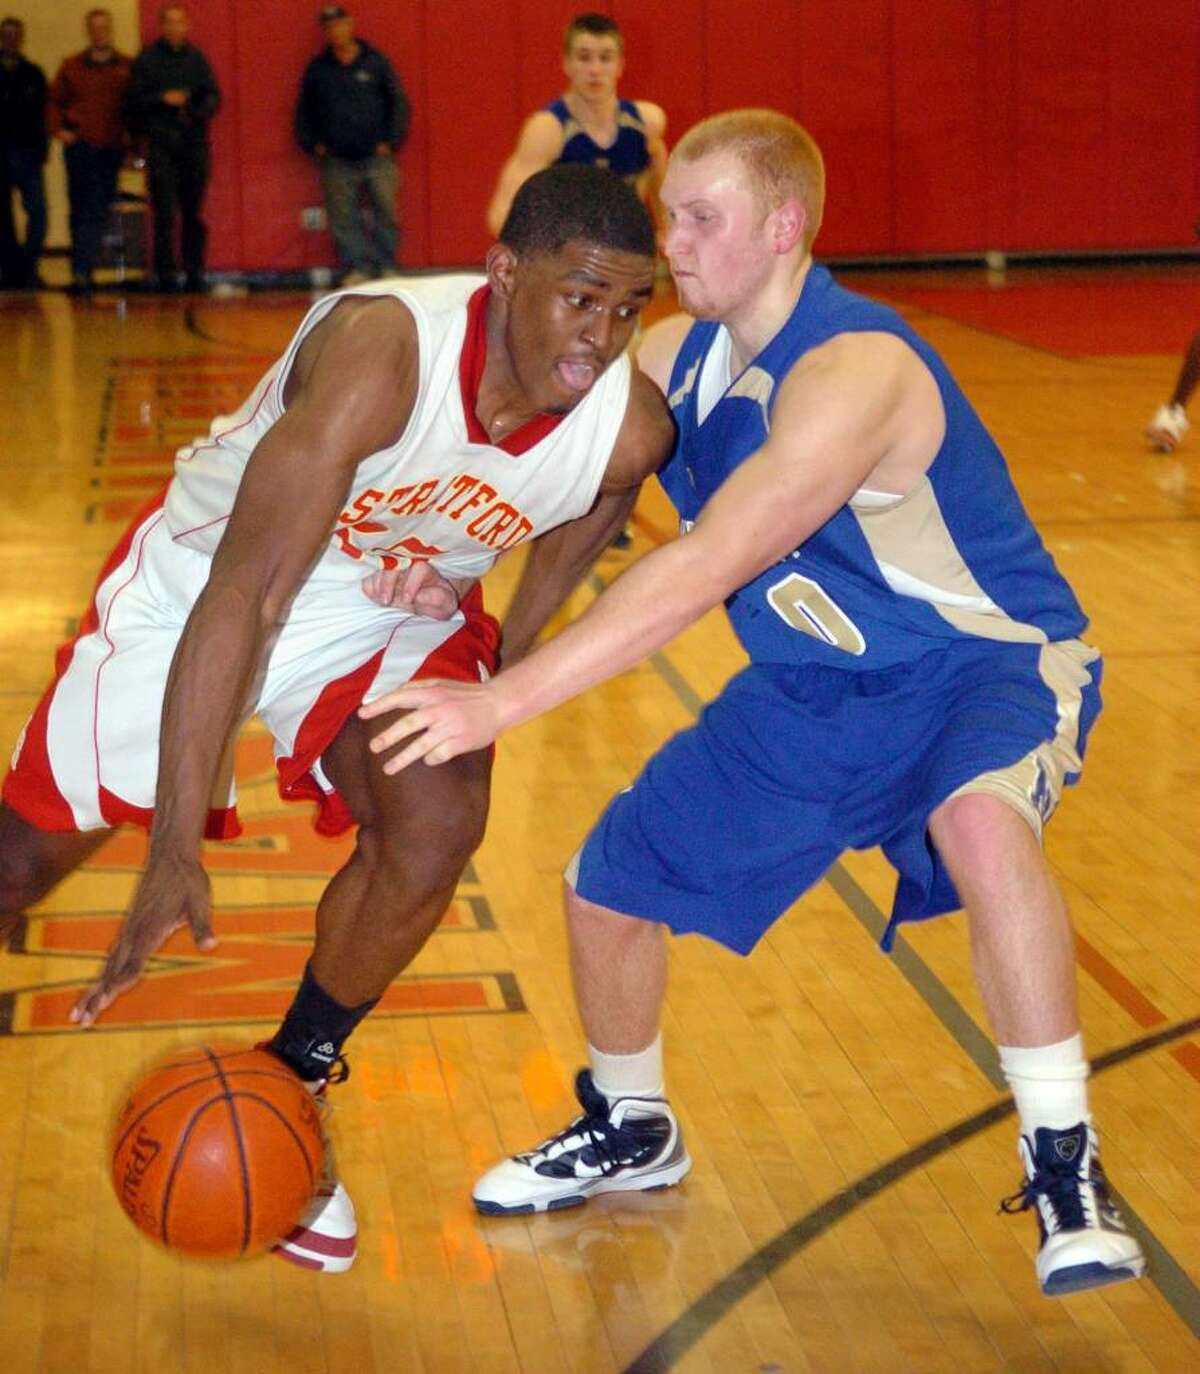 Stratford's #35 Brandon Sherrod, left, takes the ball around Newtown's #50 George Zaruba, during SWC Championship action in Monroe on Thursday March 04, 2010. Stratford went on to win 53-41.